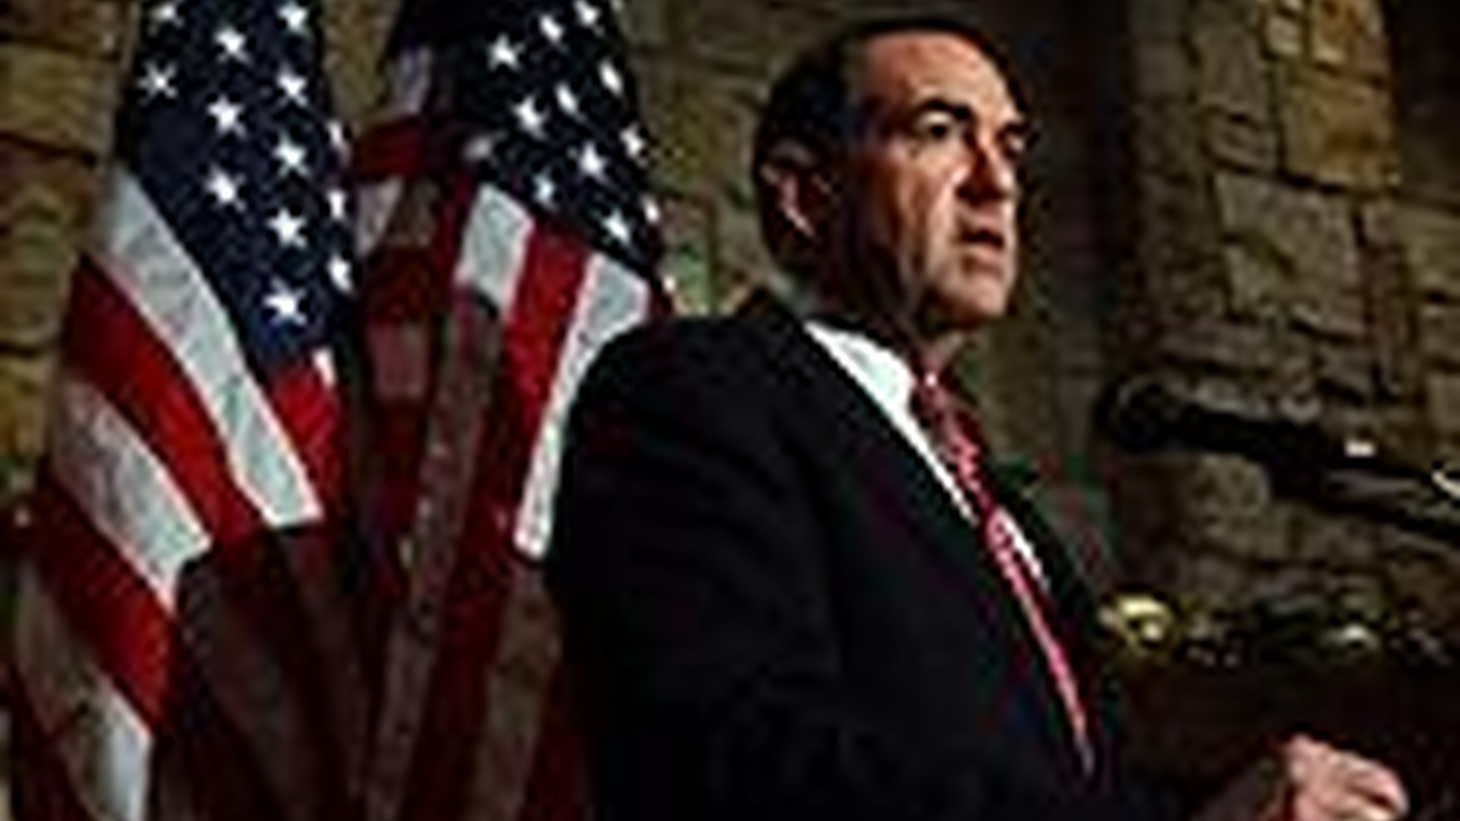 Former Baptist preacher Mike Huckabee leads Mitt Romney in Iowa, and in national polls, he's catching up to Rudy Giuliani. Also, difficulties in Bali and Washington over emissions and energy. On Reporter's Notebook, baseball stars and steroids: will there be asterisks on the records?